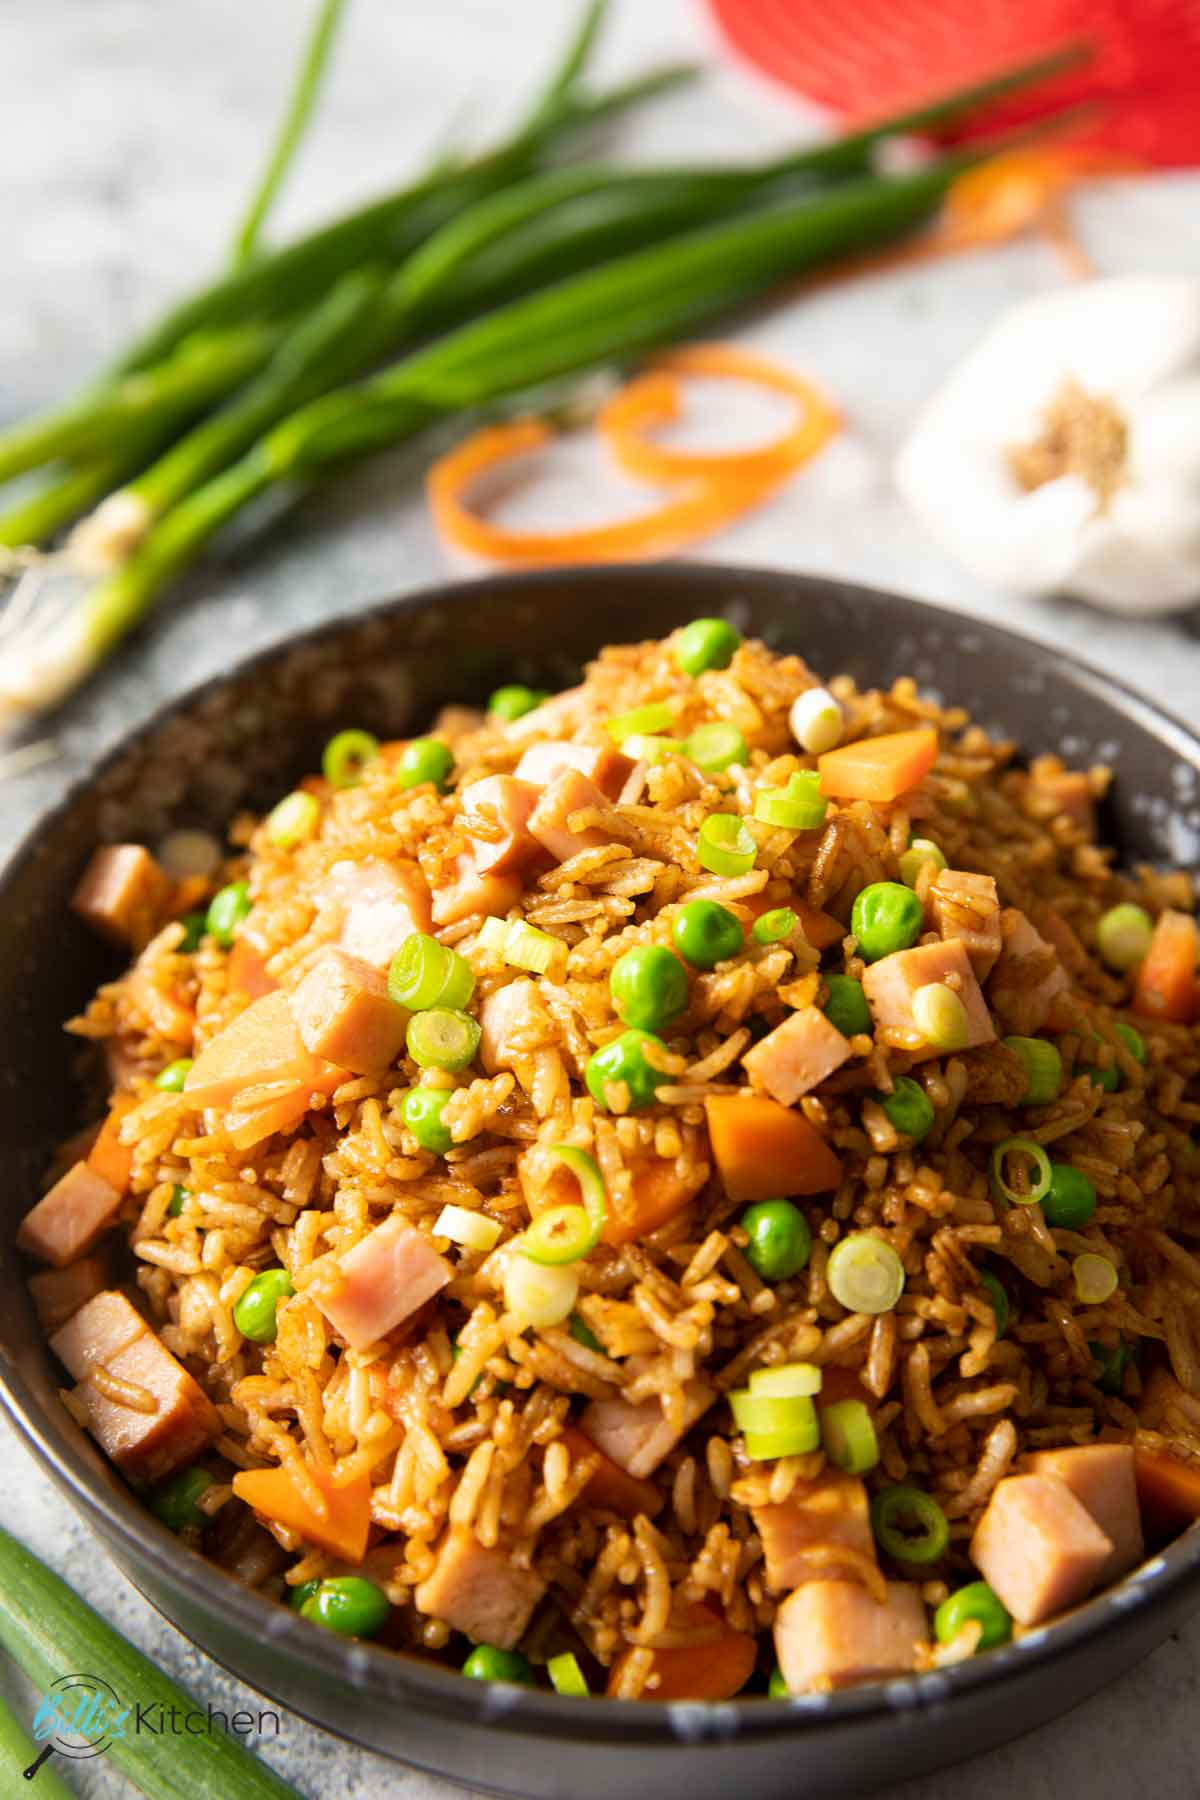 A shot of fried rice with ham, ready for serving, with spring onions on the background.